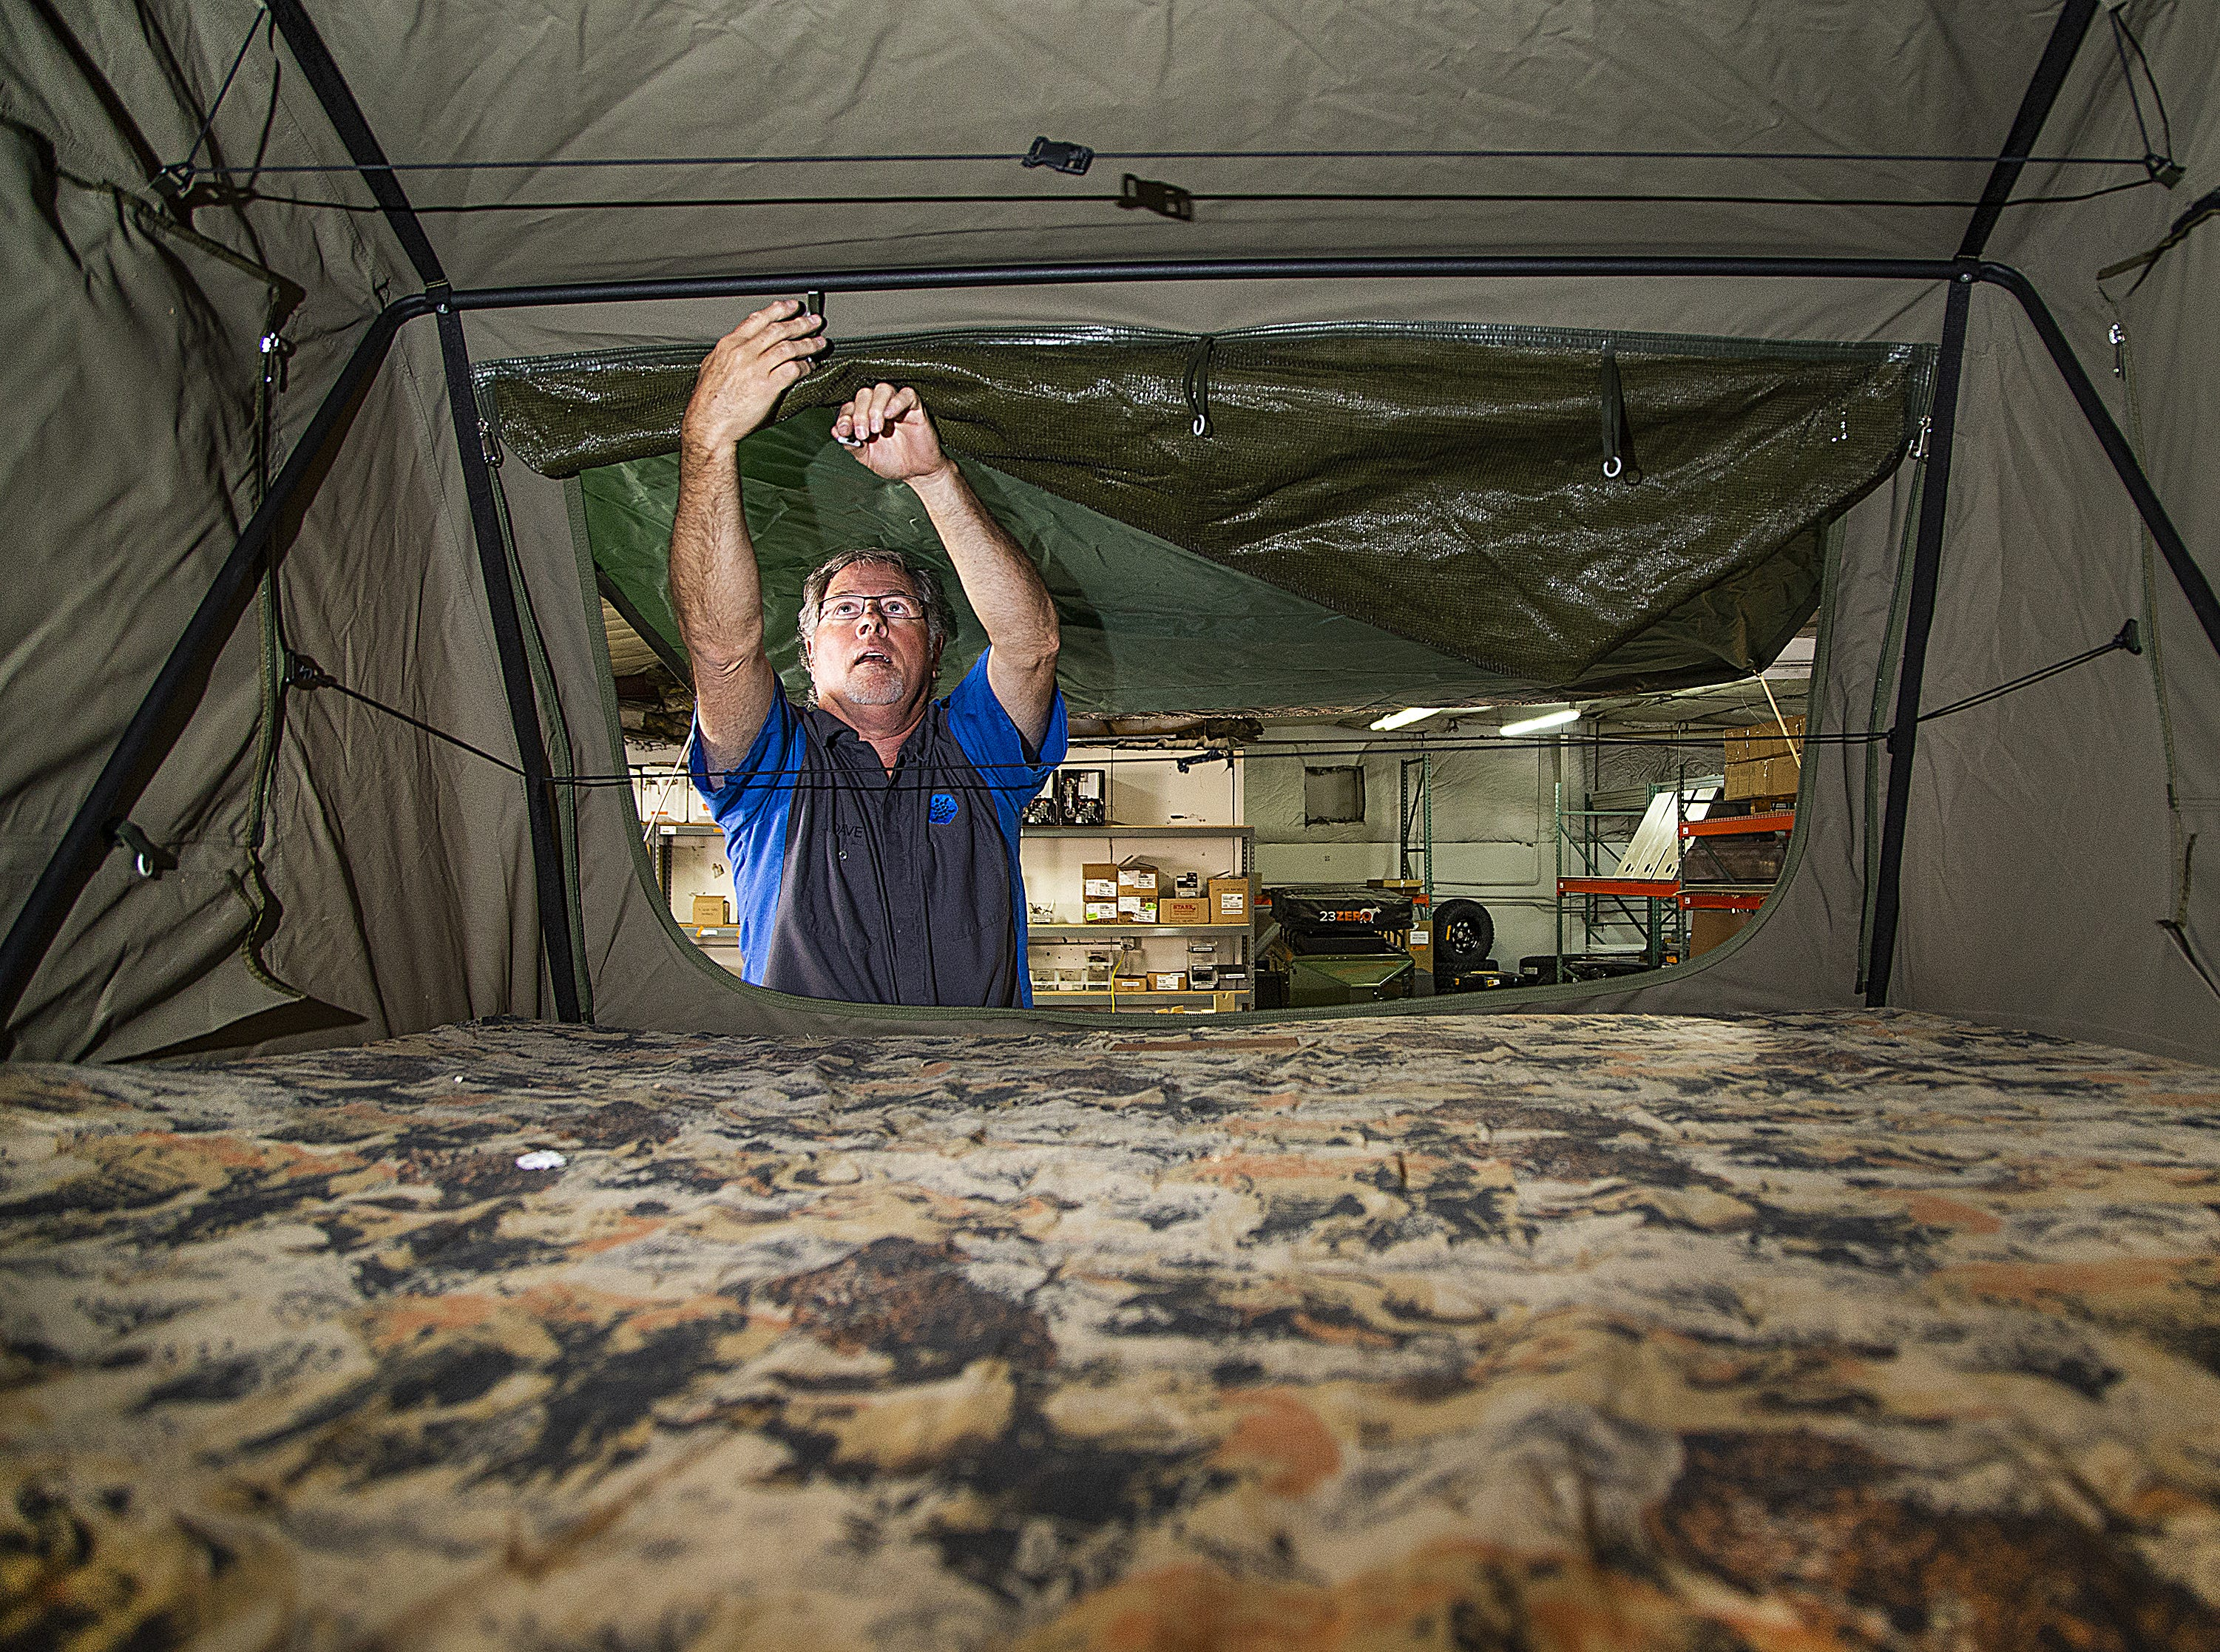 Dave Munsterman adjusts the screen of the tent on top of a Turtleback trailer at the company plant near 14th Street and Broadway in Phoenix on March 26, 2019.